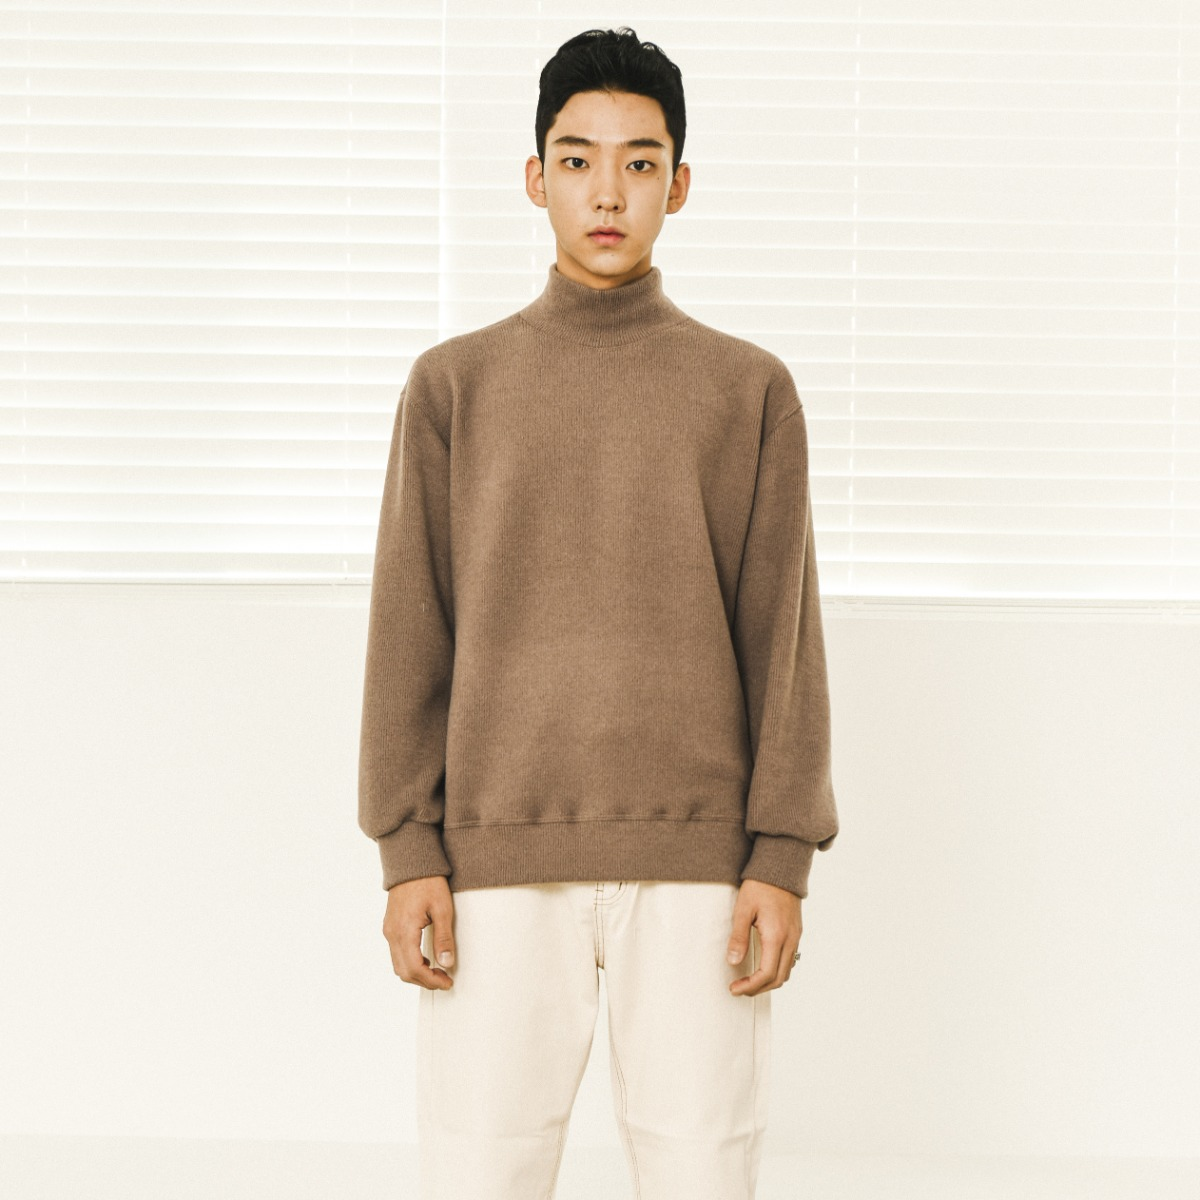 Soft Poloneck Knit - Brown